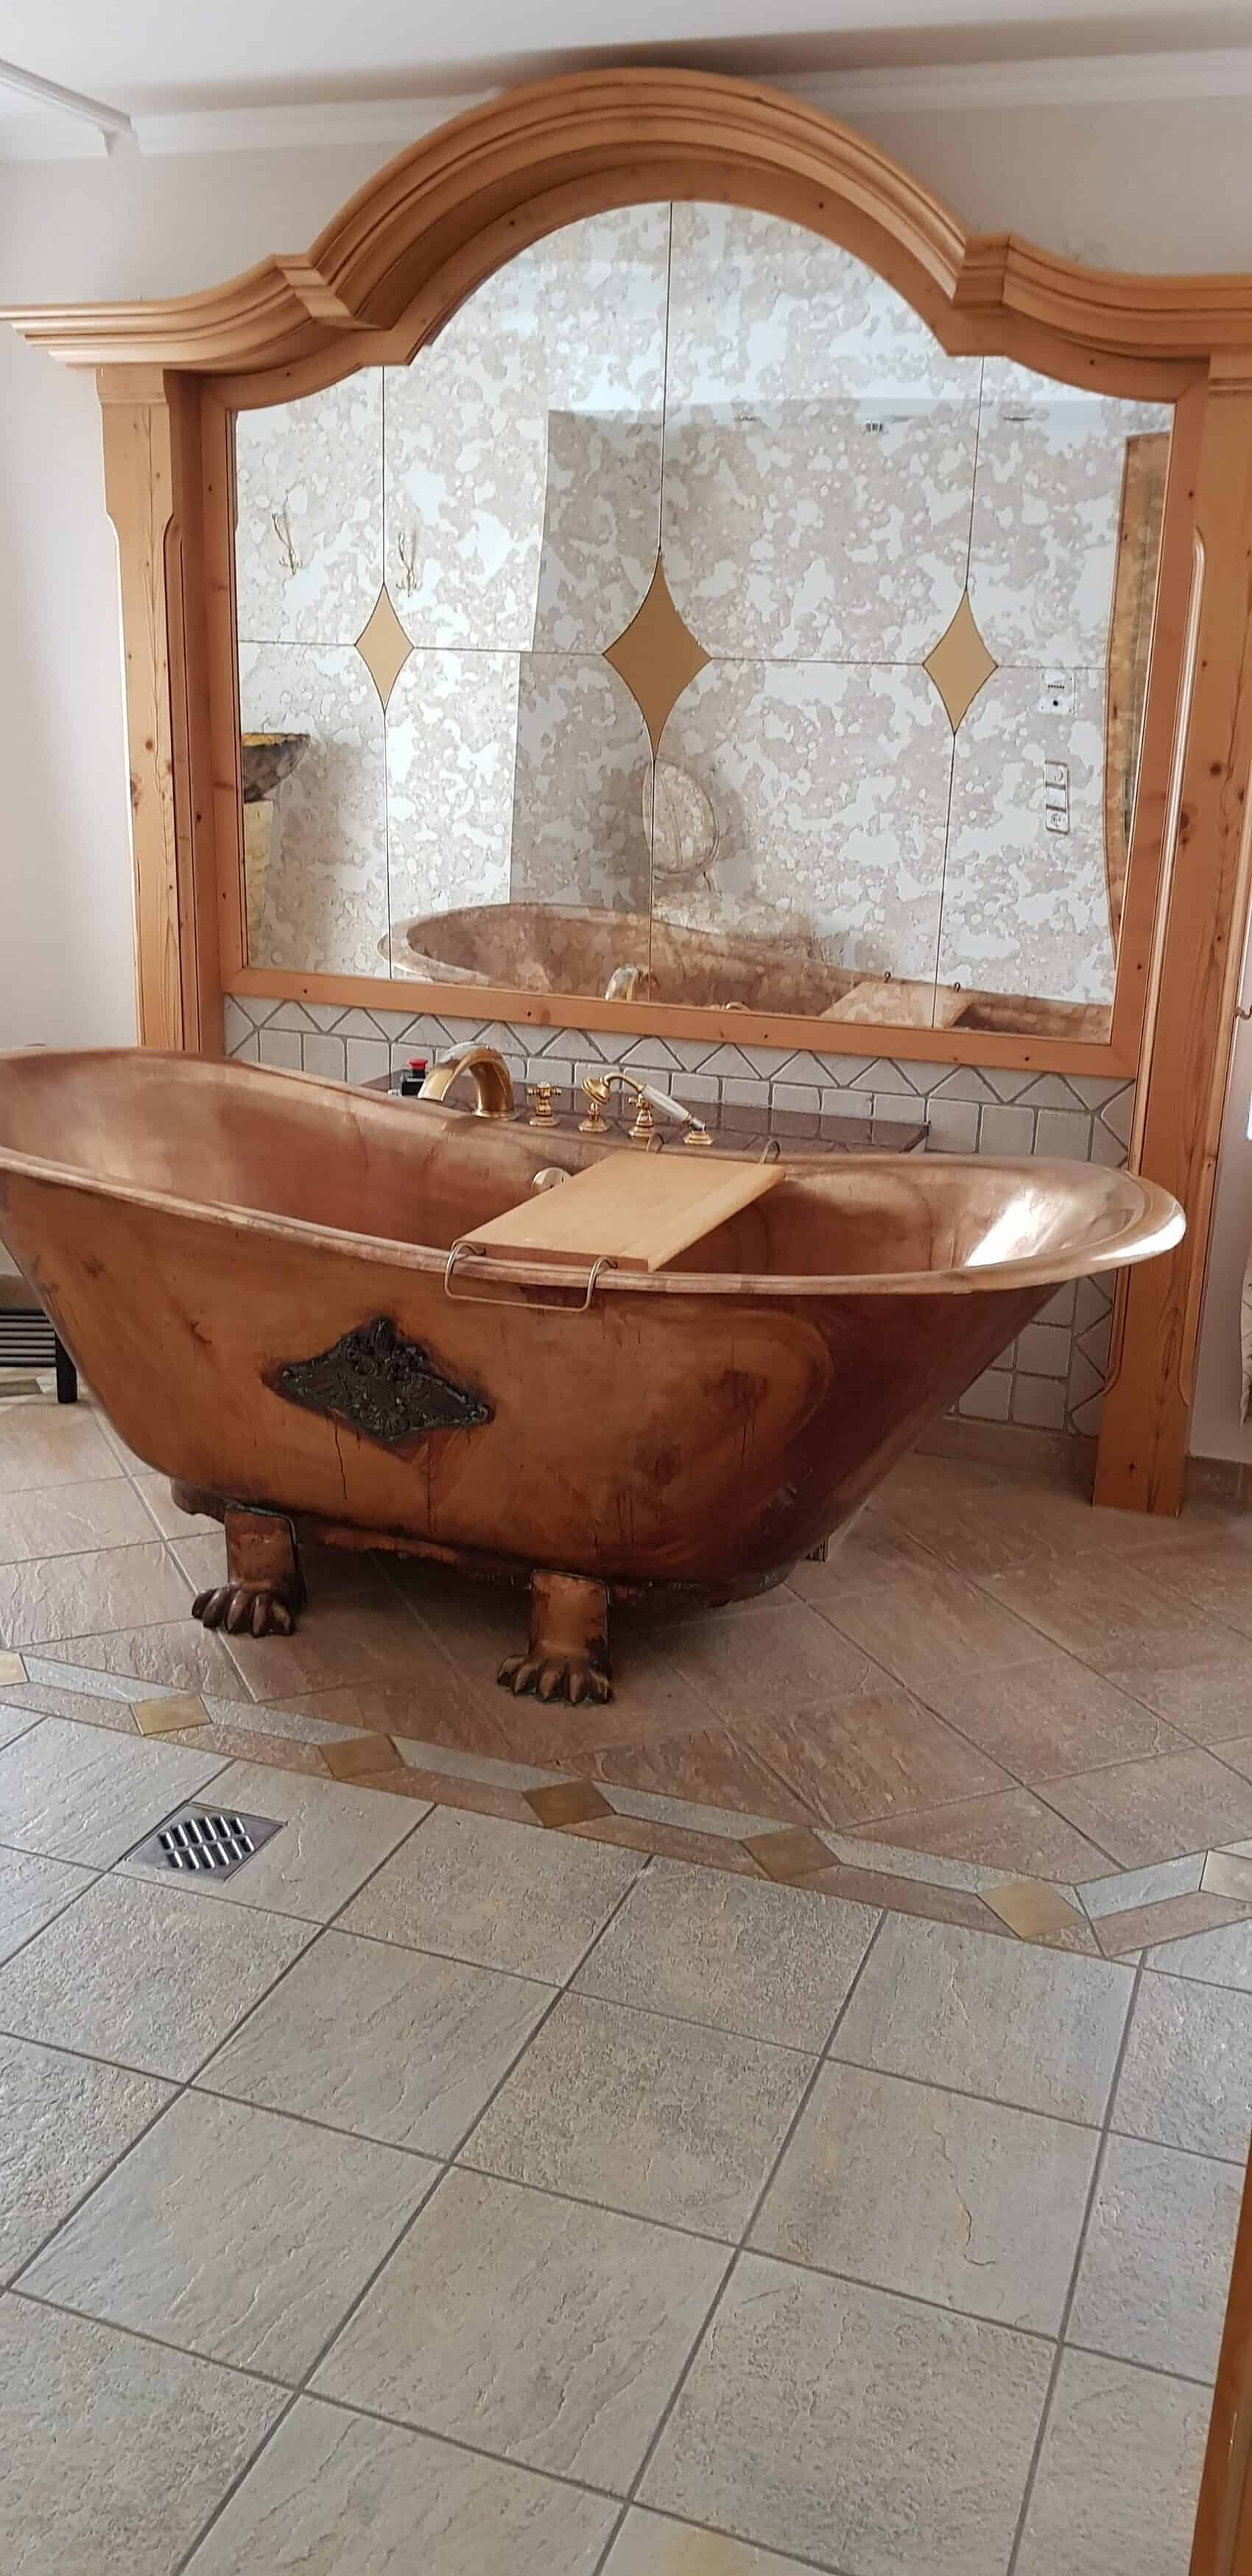 Lärchenhof wellness tub